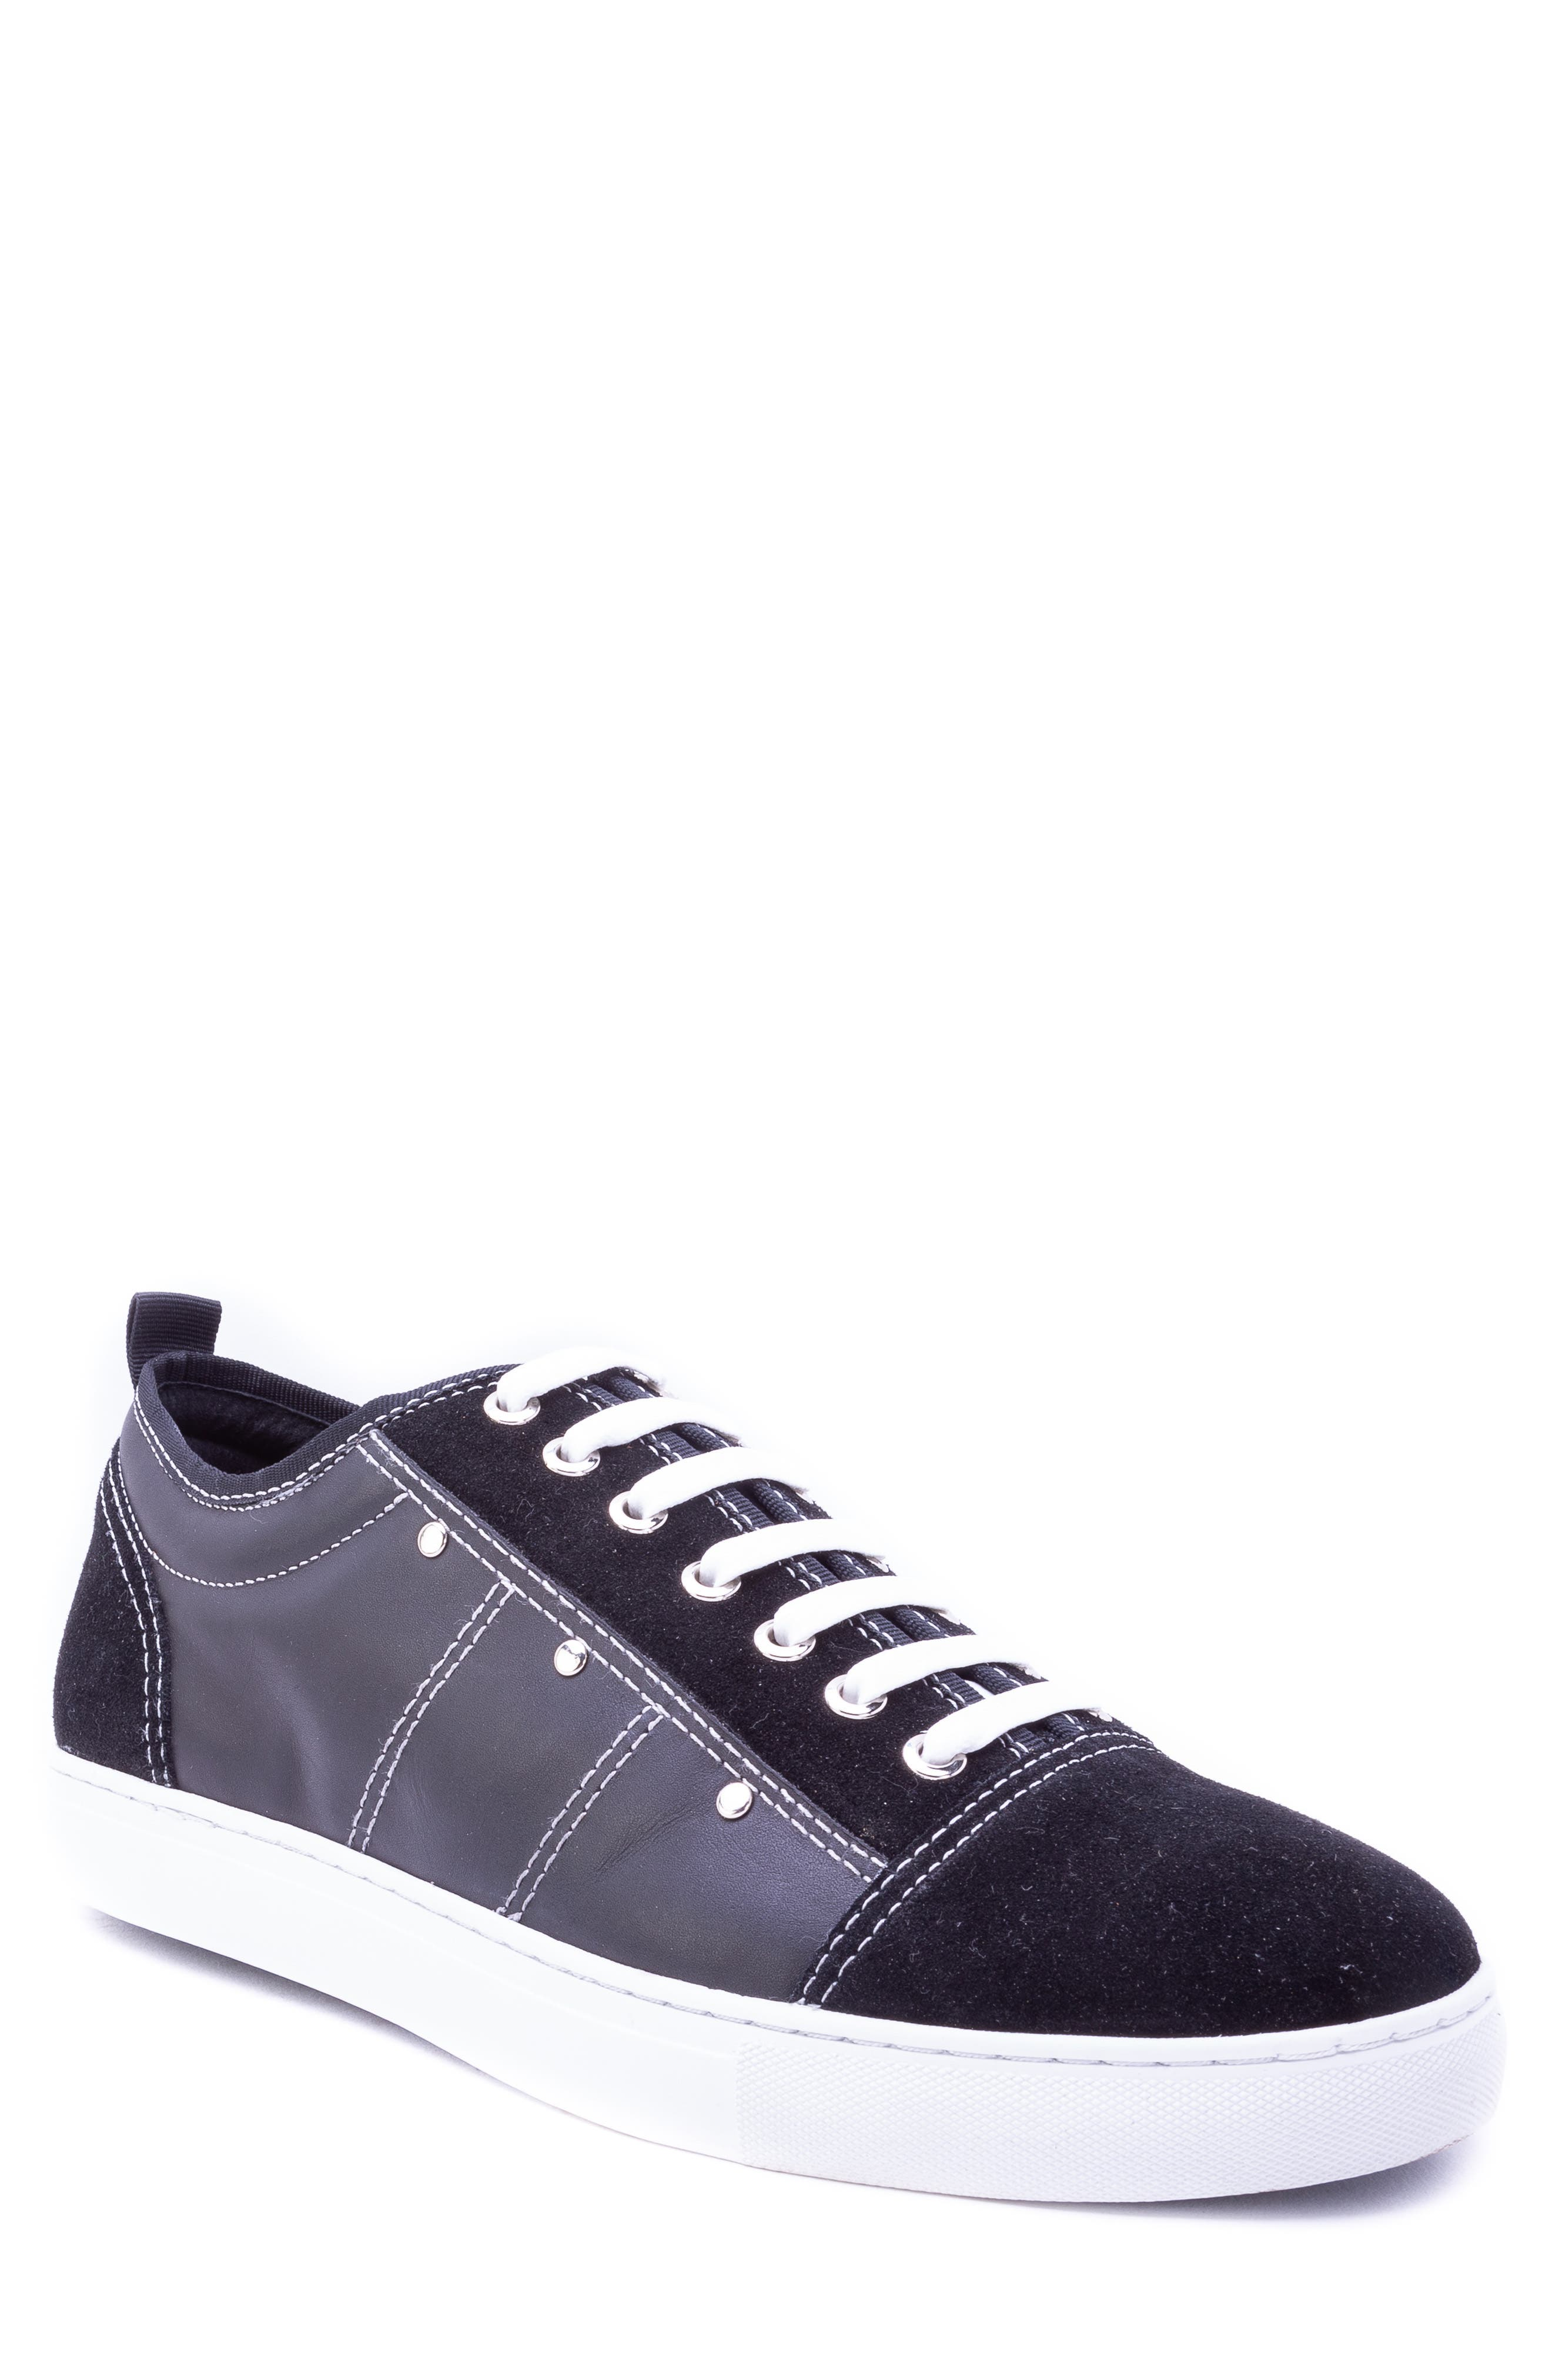 Severn Studded Low Top Sneaker,                             Main thumbnail 1, color,                             BLACK SUEDE/ LEATHER